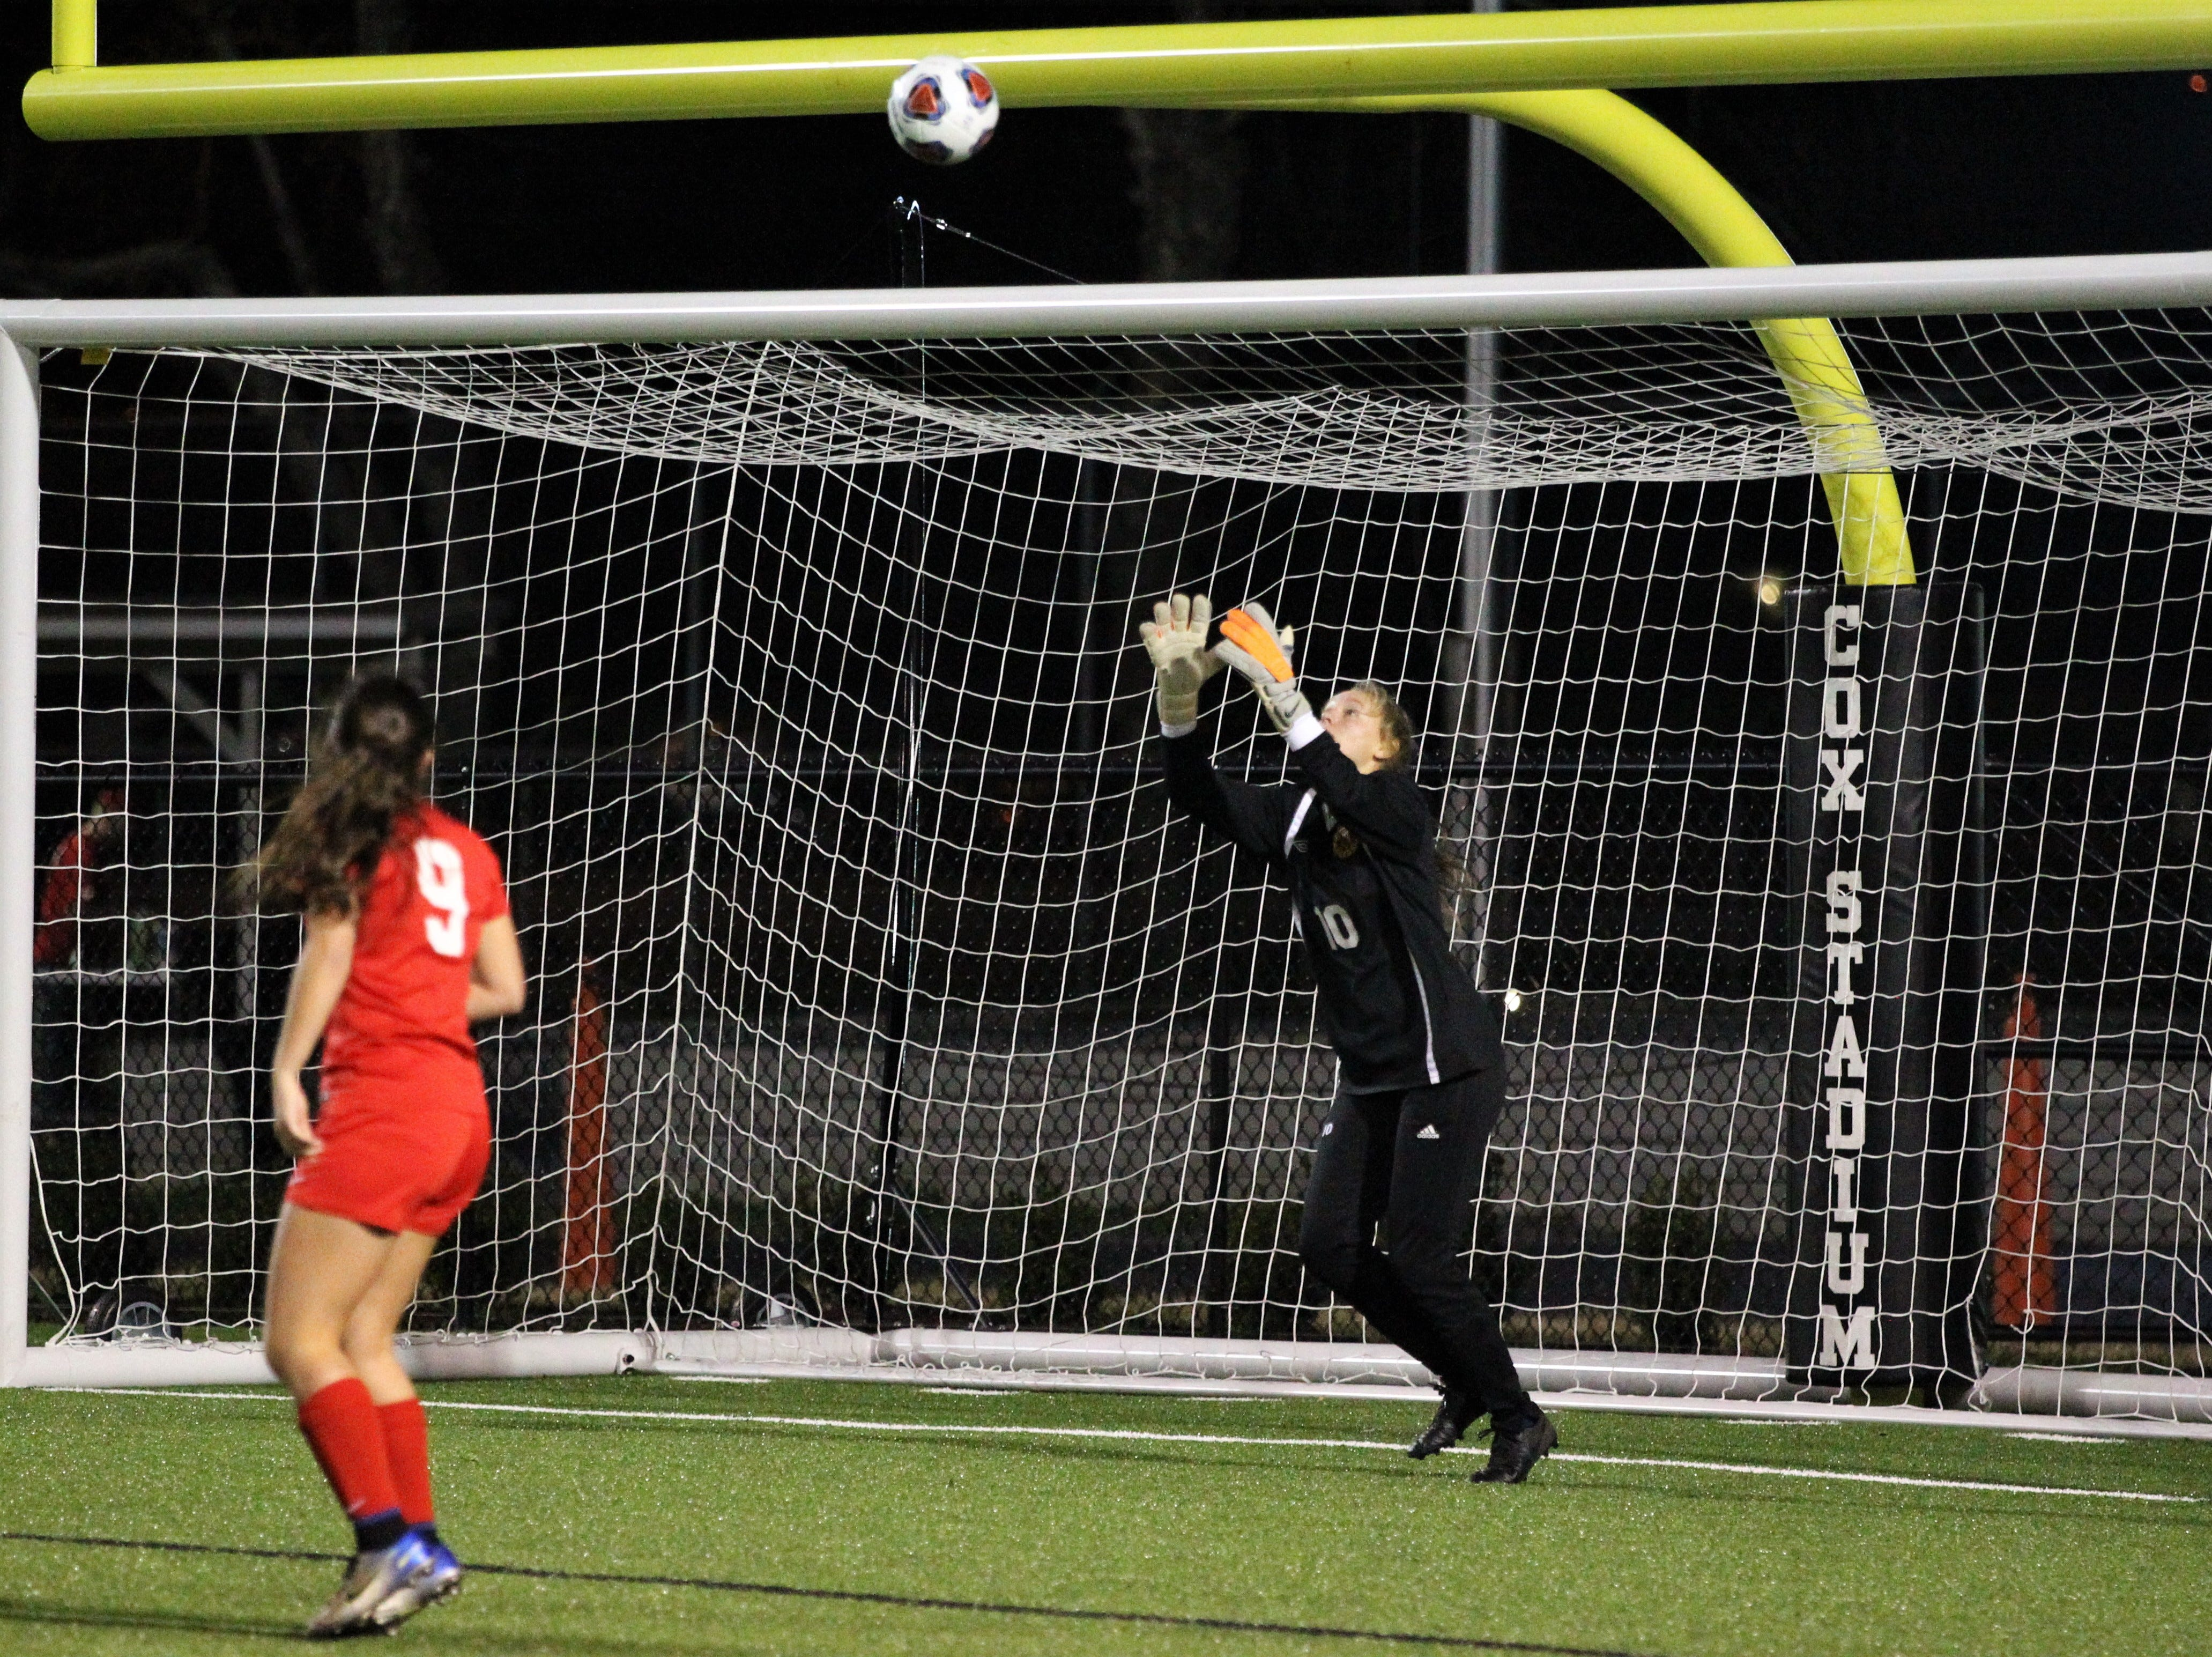 Leon keeper Regan Hermeling waits to save a long shot as Niceville's girls soccer team beat Leon 1-0 in a Region 1-4A semifinal at Gene Cox Stadium on Jan. 8, 2019.